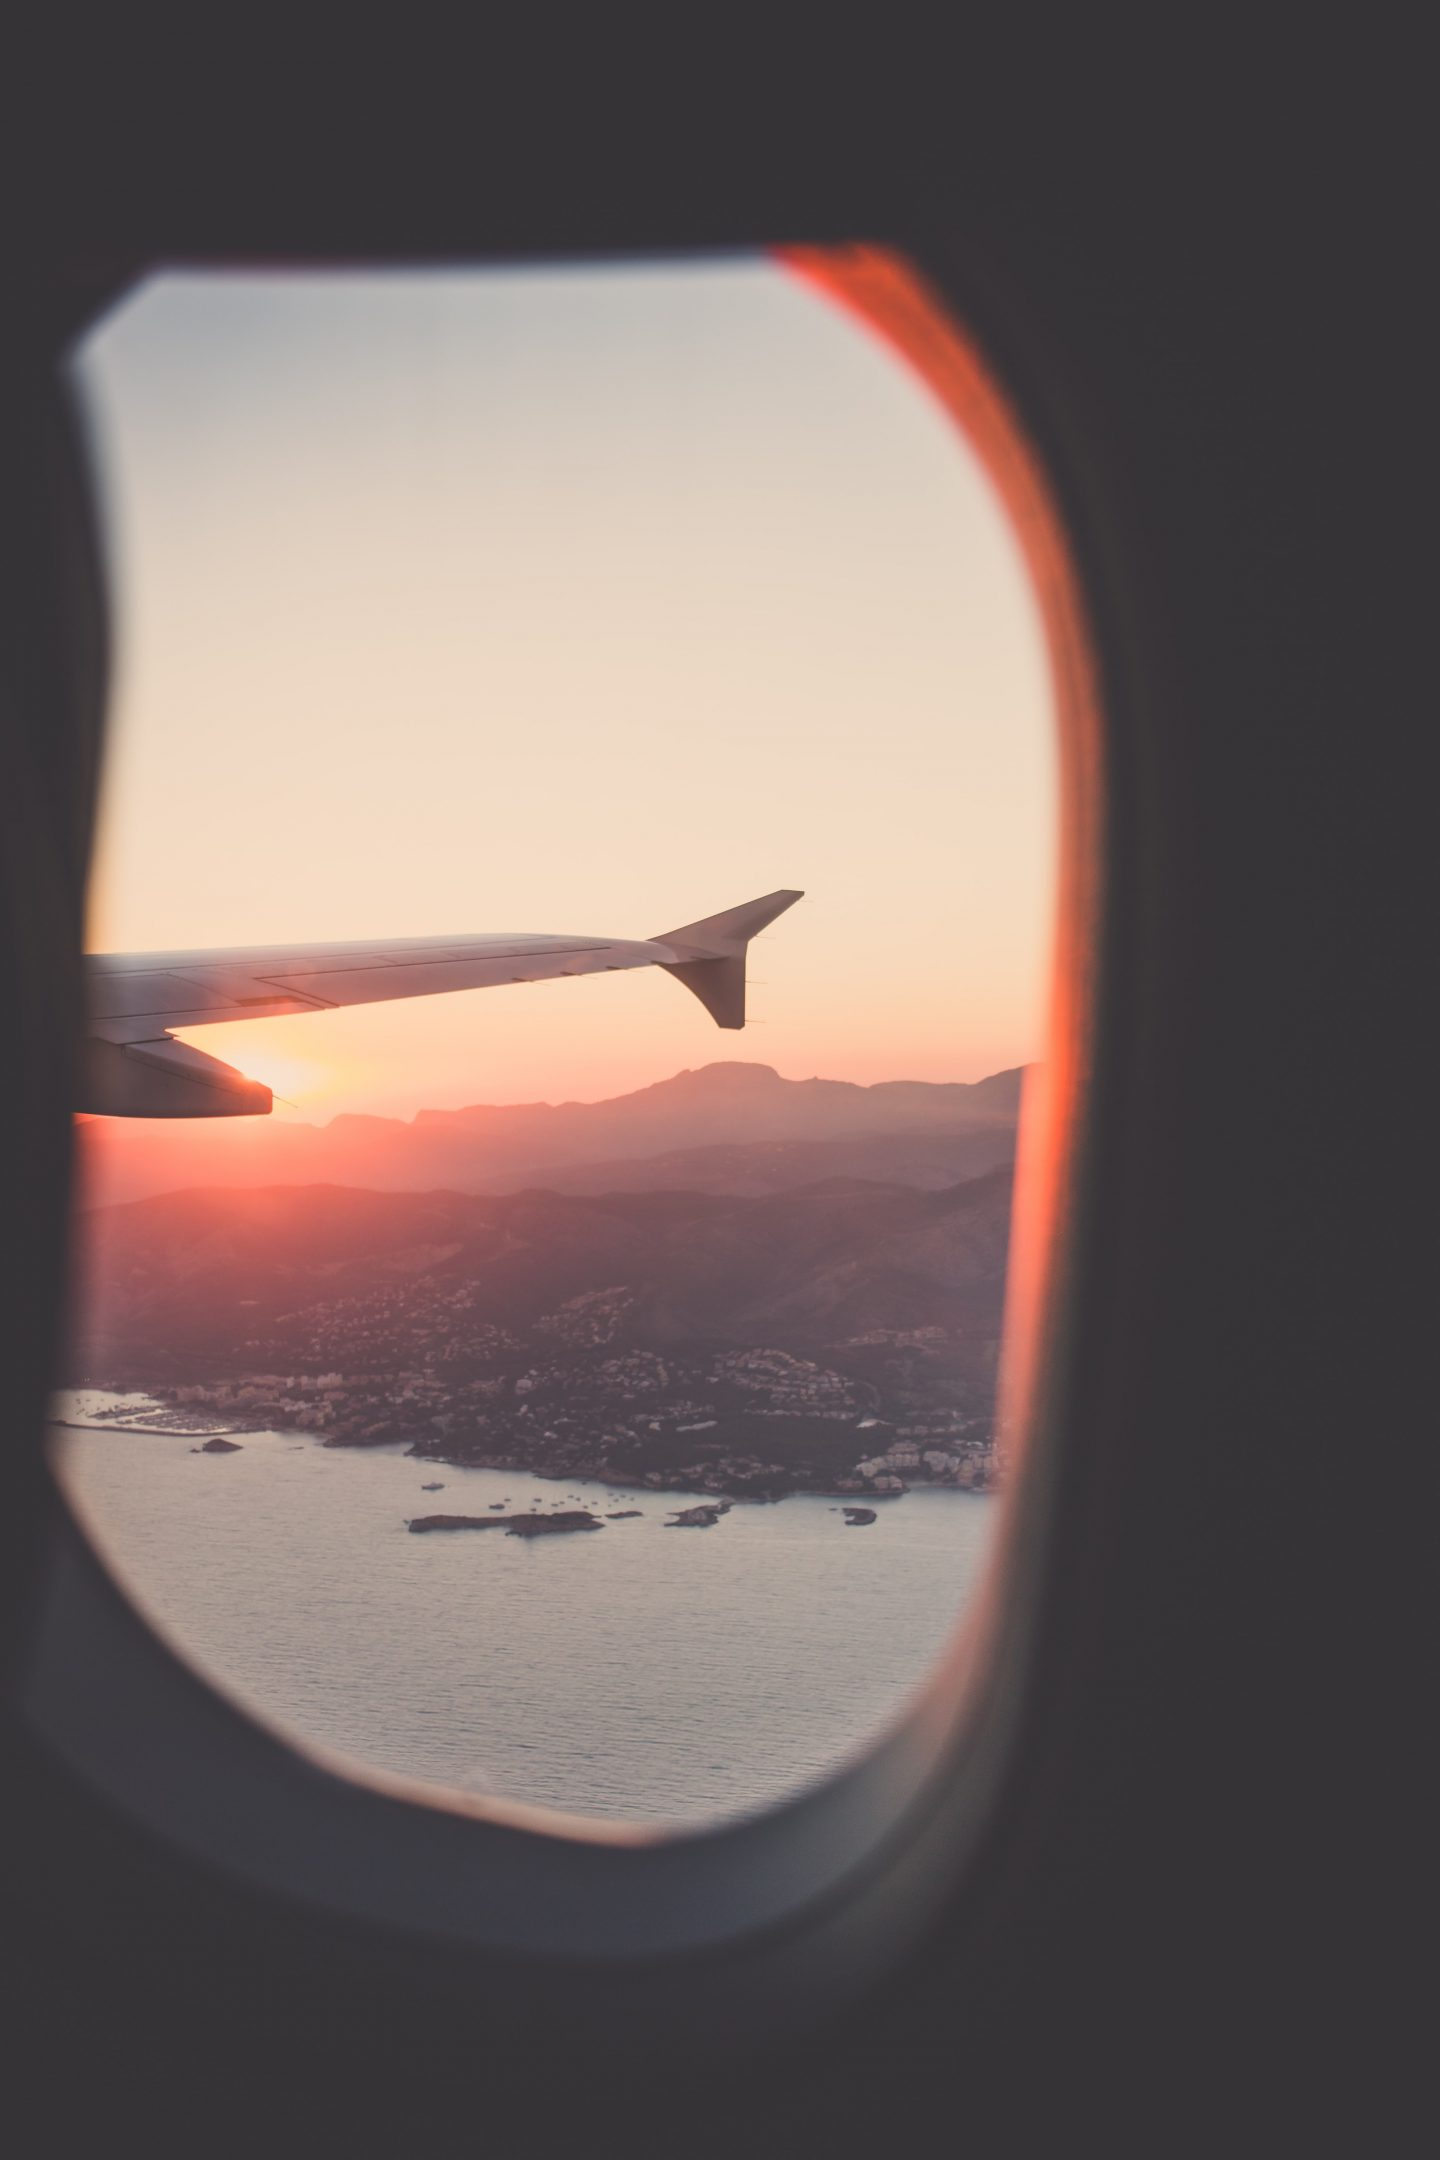 a view from the airplane over mountains, ocean view, mountain view, luxury travel